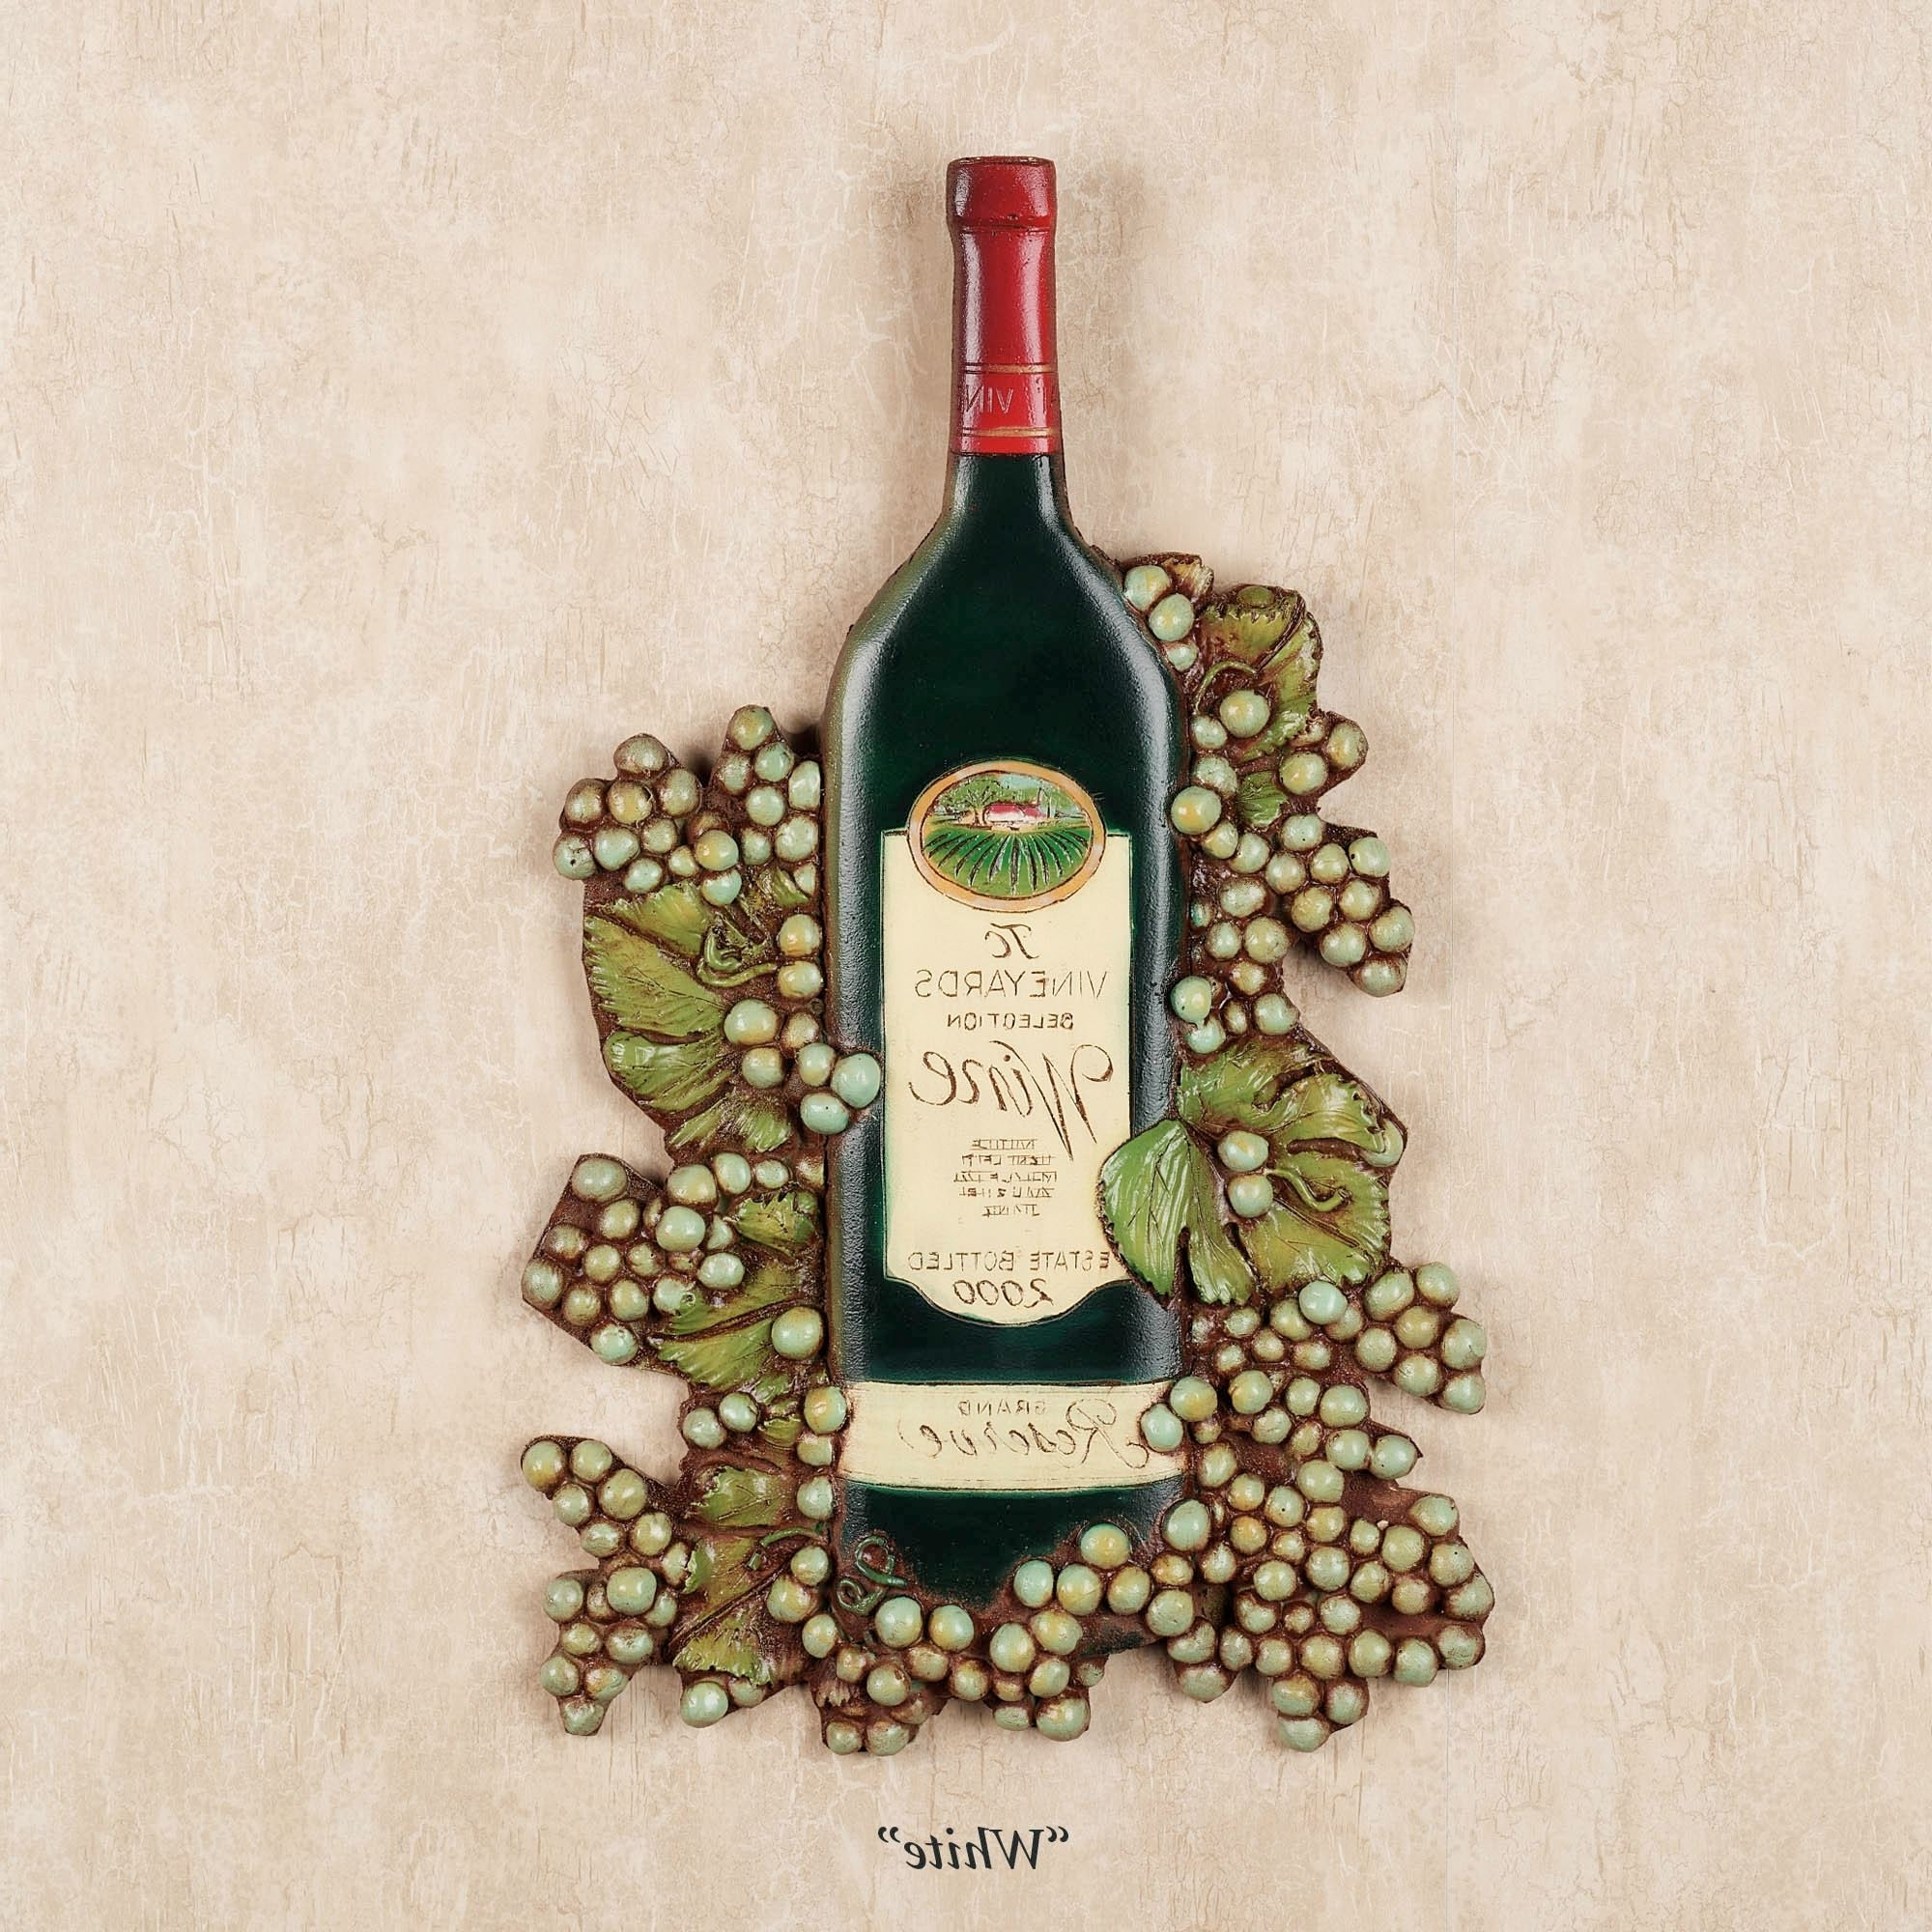 Wine Bottle Wall Plaque Within Most Current Italian Wine Wall Art (View 14 of 15)